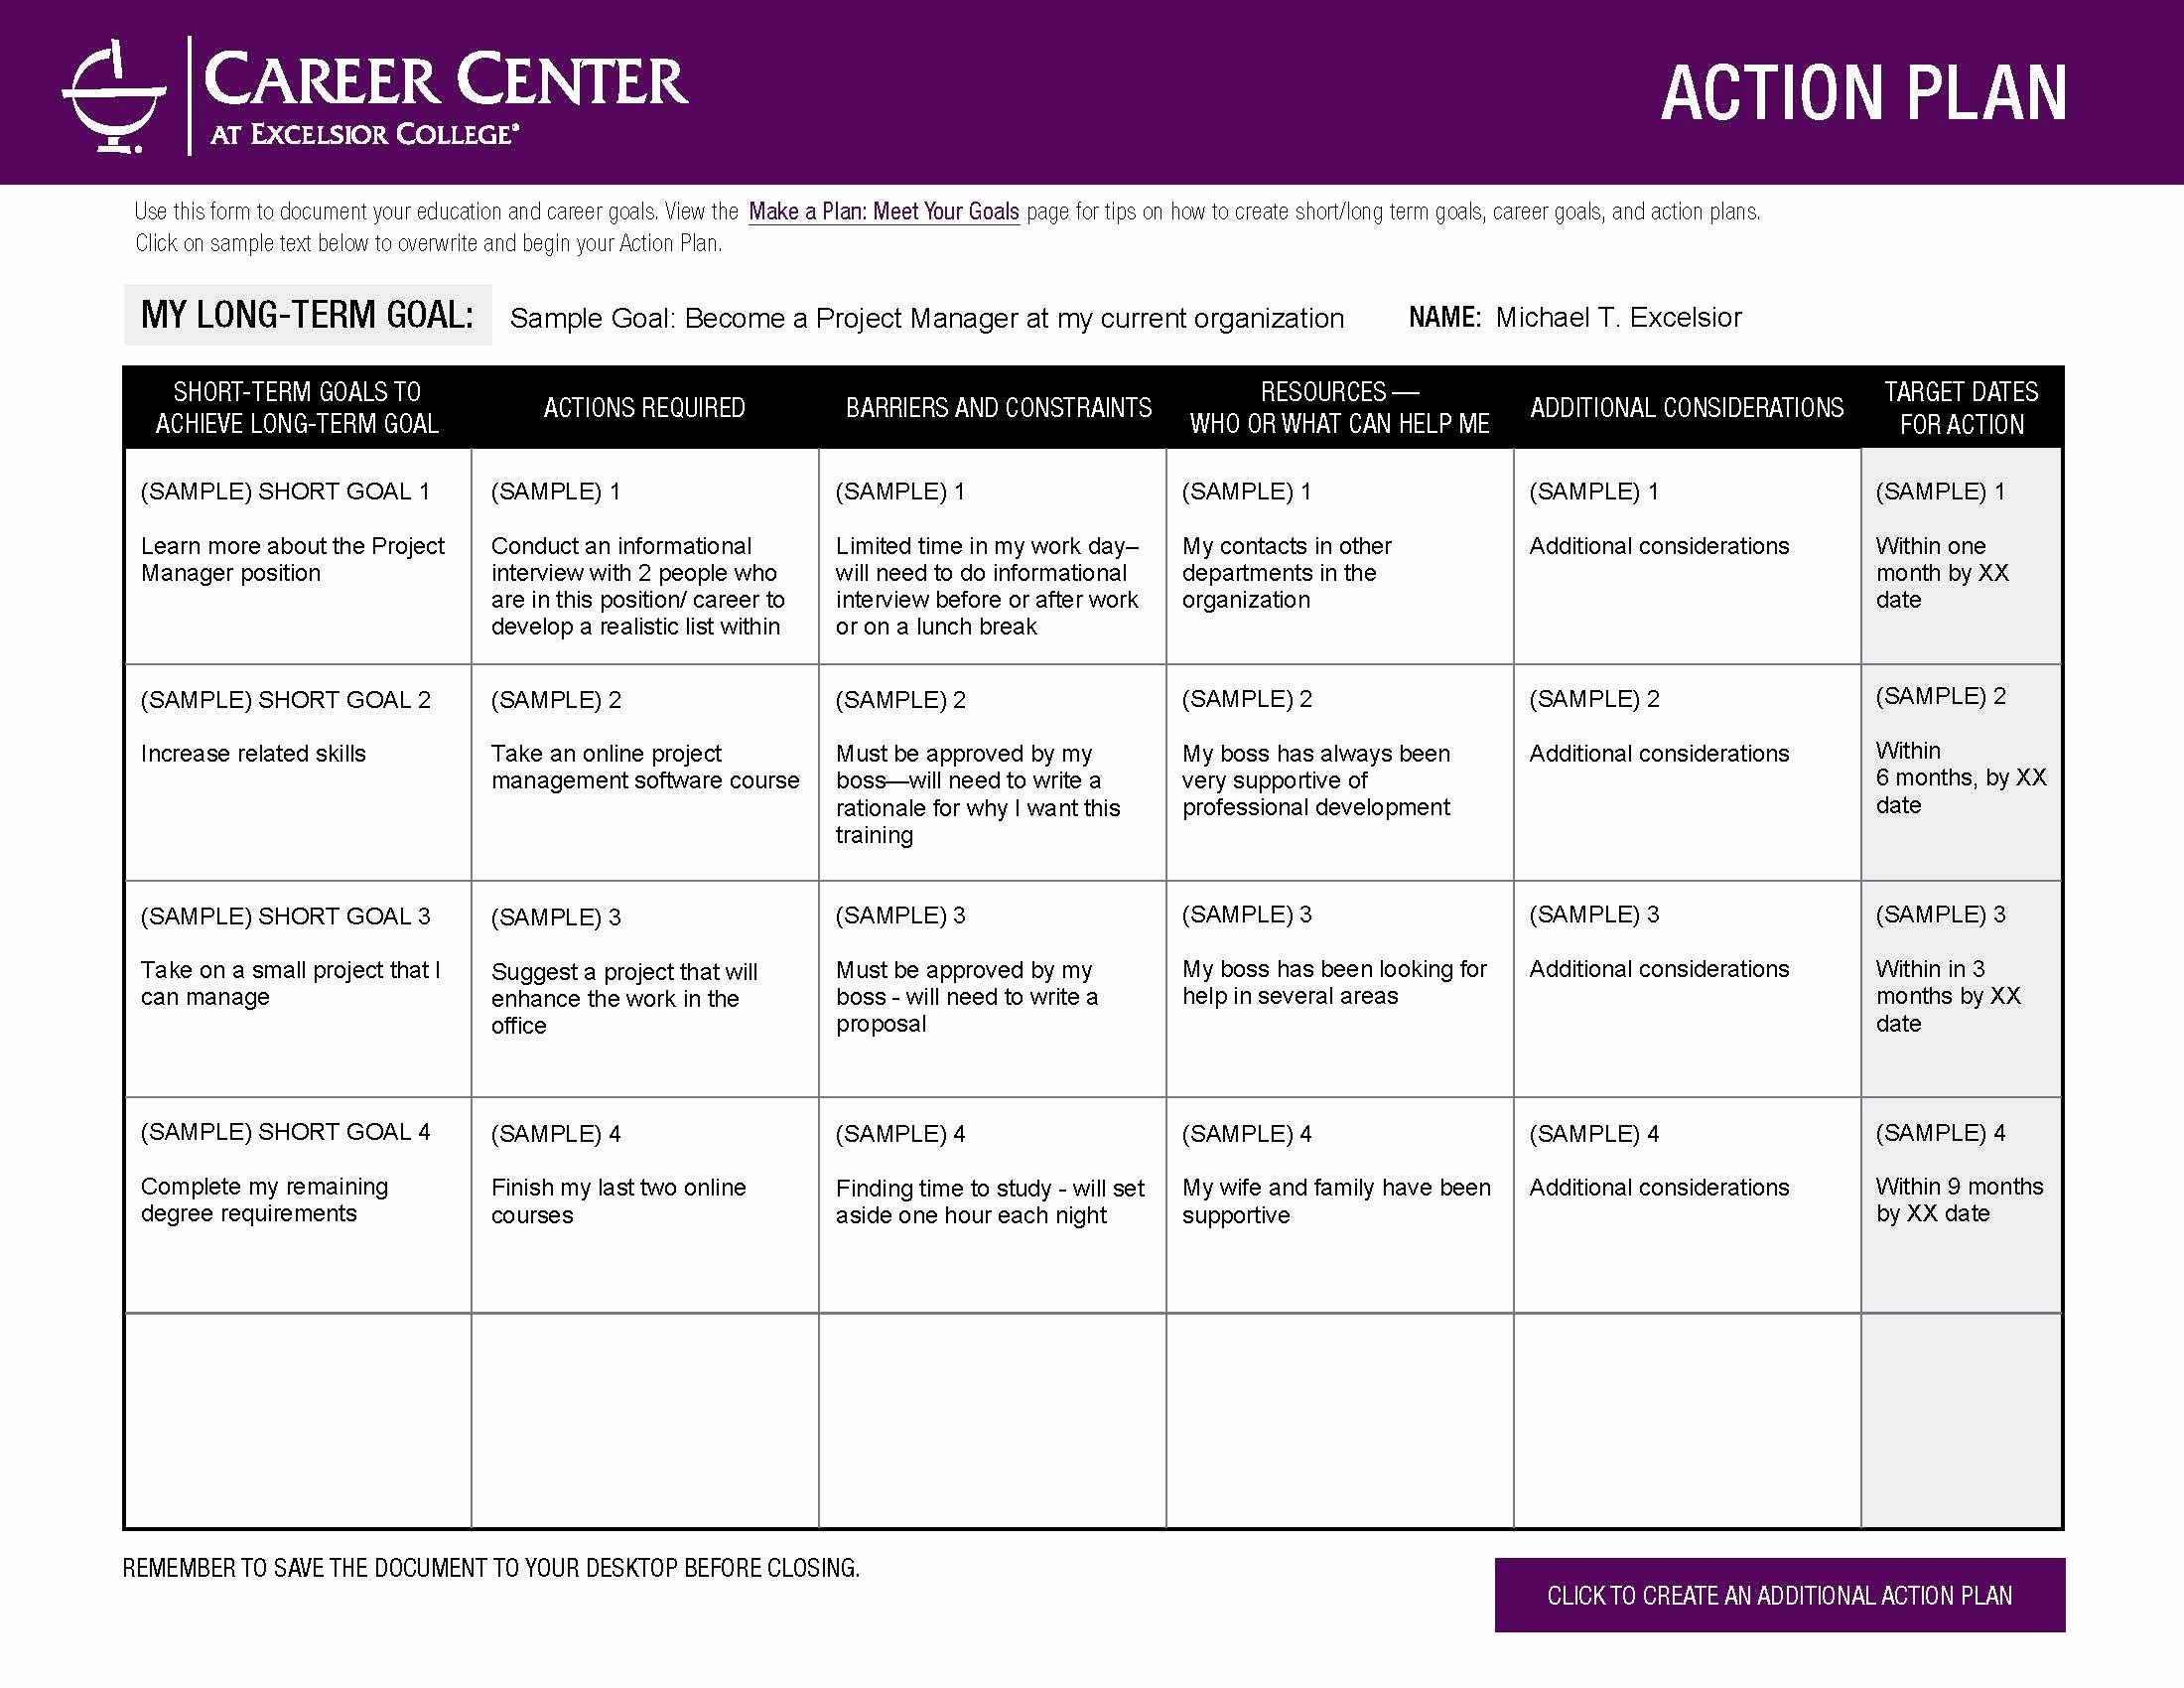 Career Action Plan Template Awesome Excelsior College Make A Plan Meet Your Goals Career